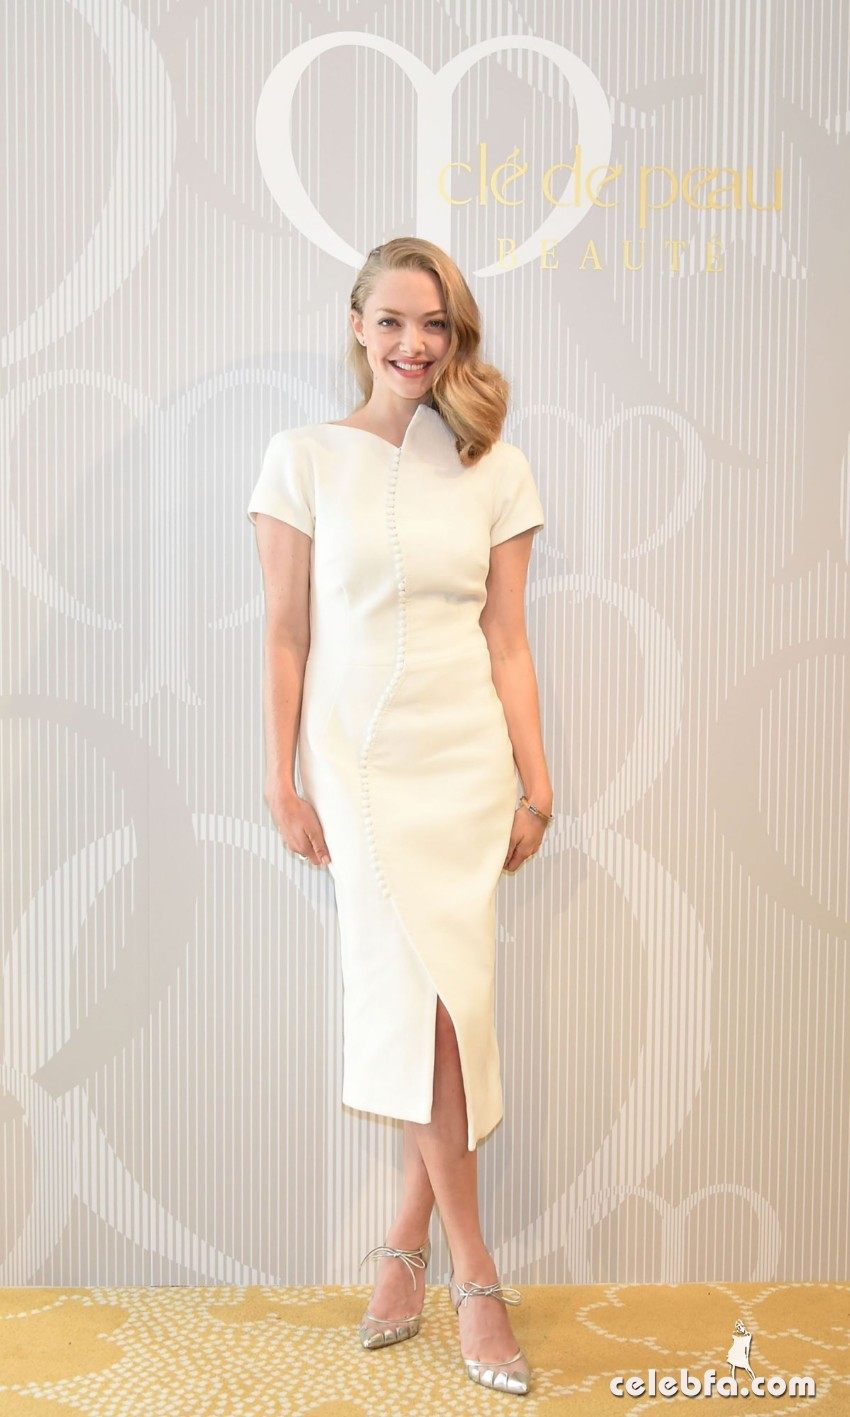 amanda-seyfried-at-cle-de-peau-beauty-promotion-in-tokyo (4)